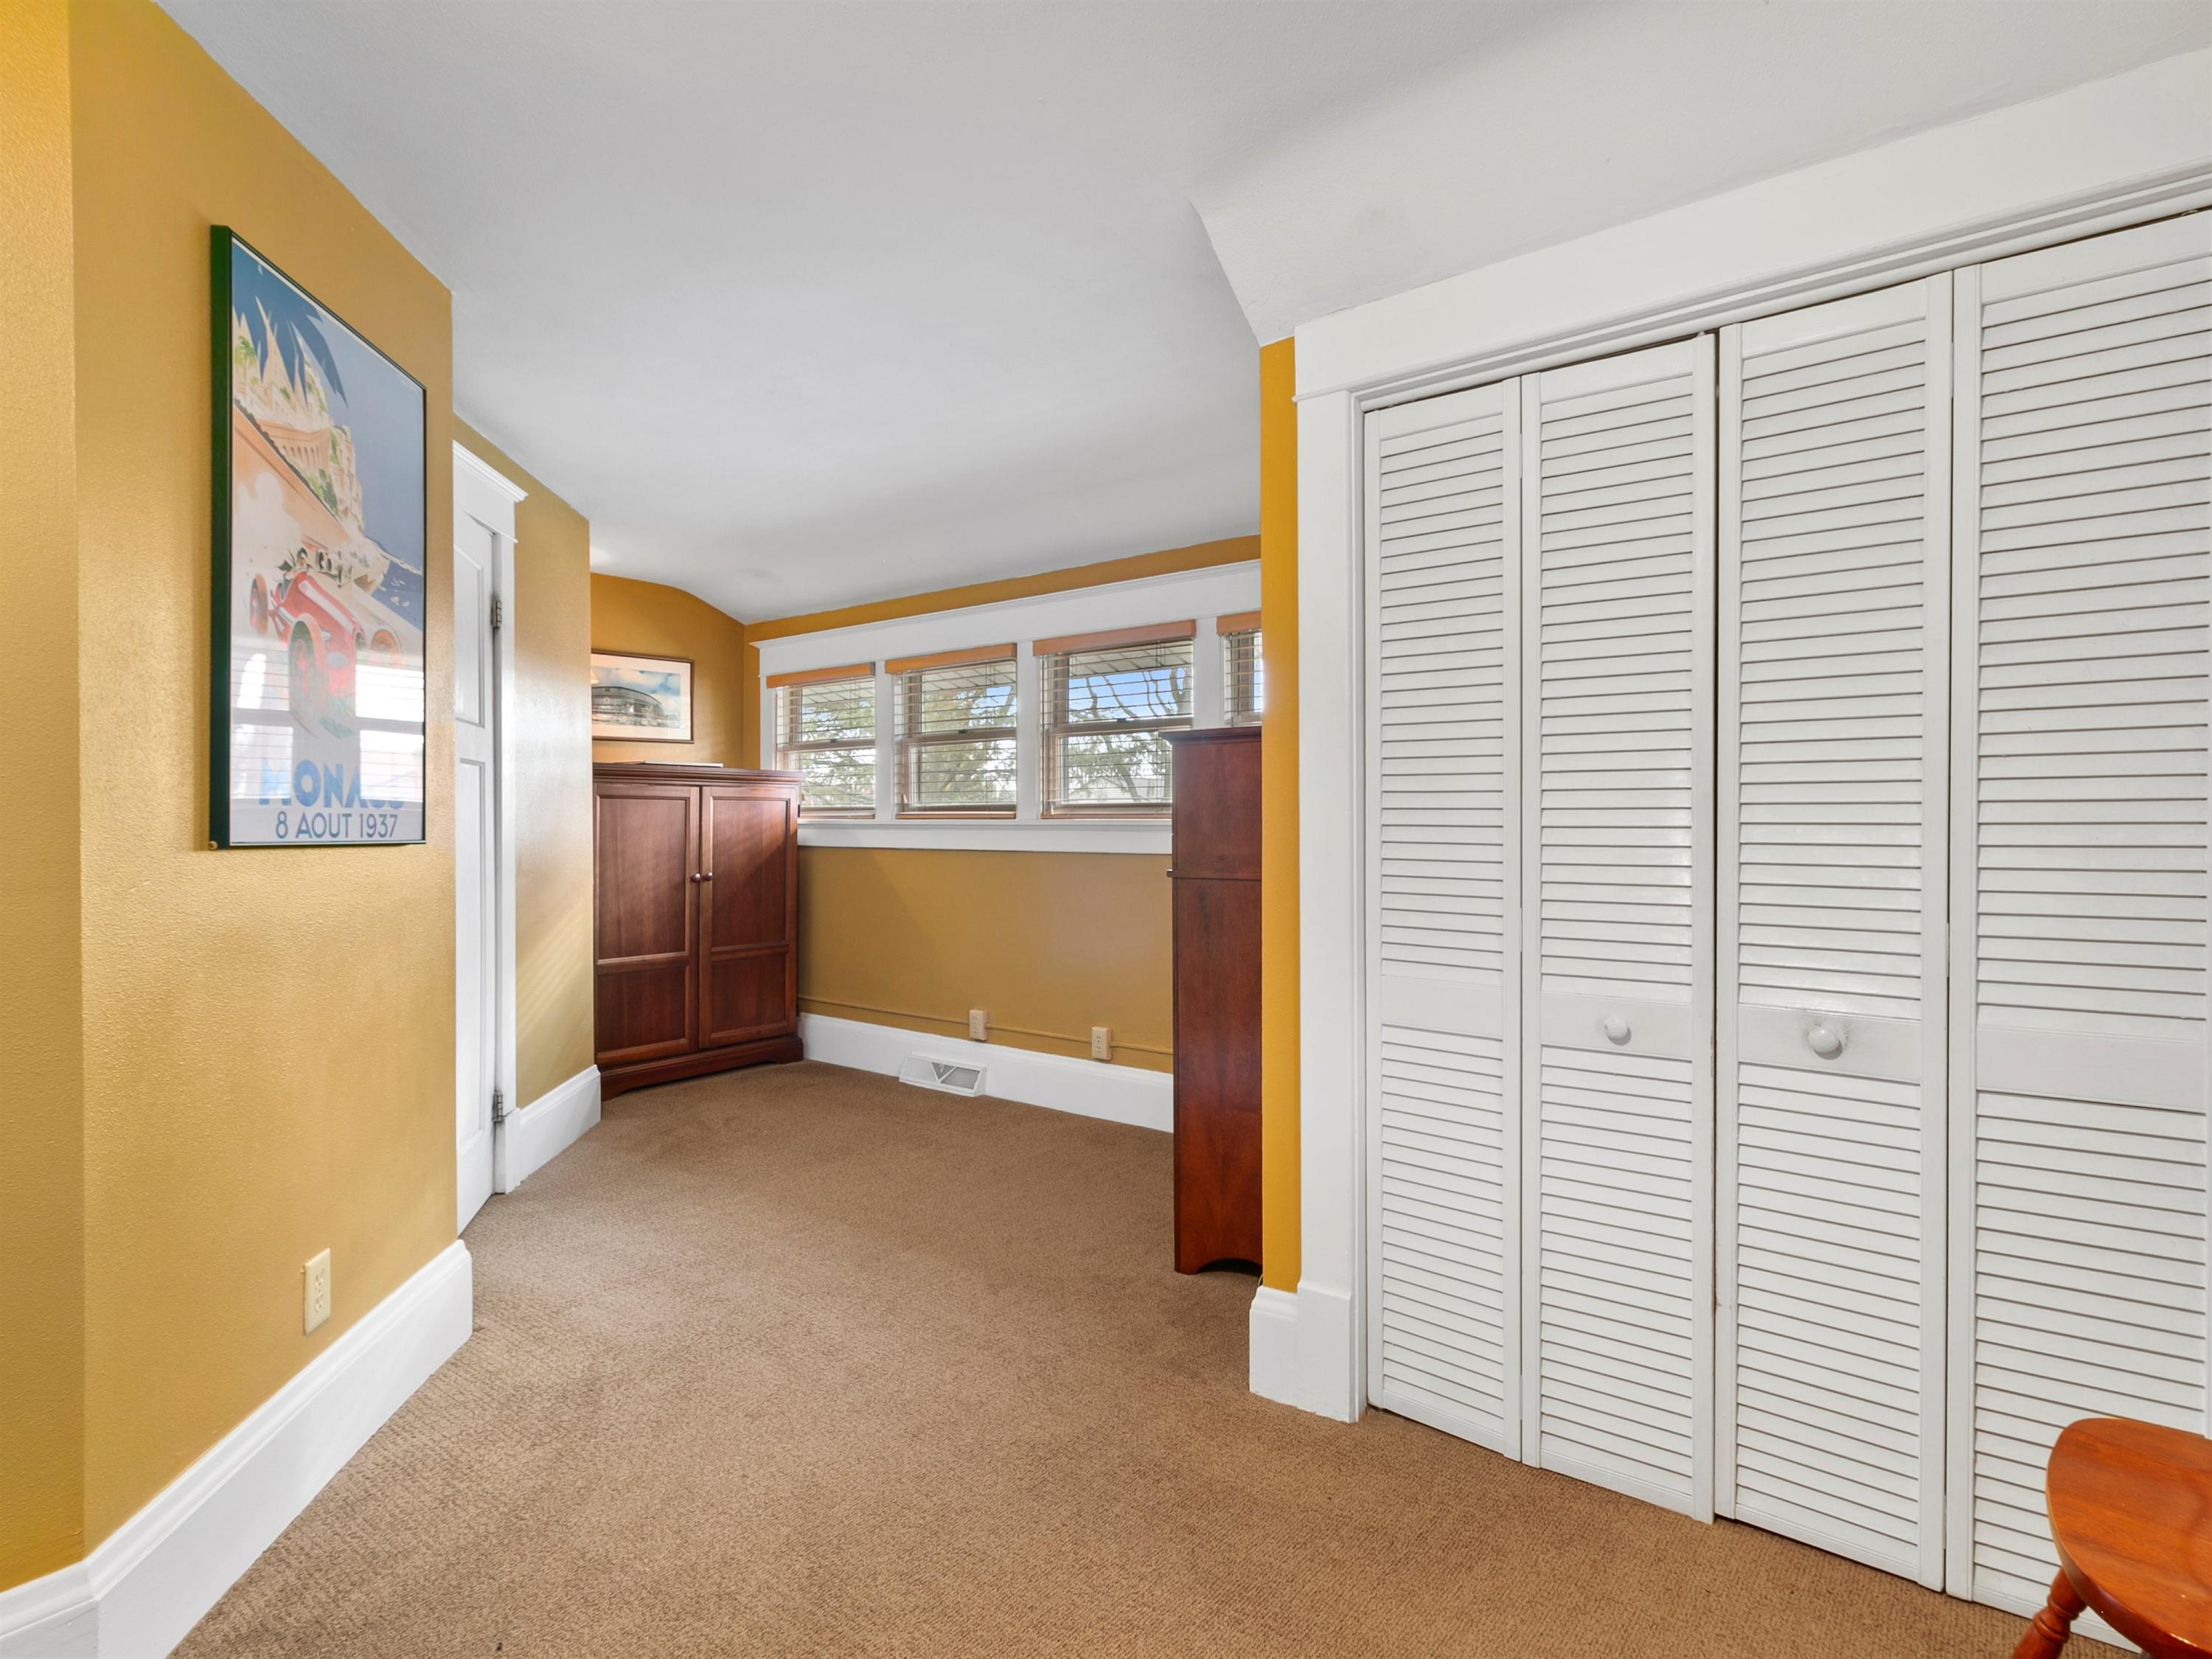 8648 Stickney Ave, Wauwatosa, Wisconsin 53226, 2 Bedrooms Bedrooms, 5 Rooms Rooms,1 BathroomBathrooms,Single-family,For Sale,Stickney Ave,1722947